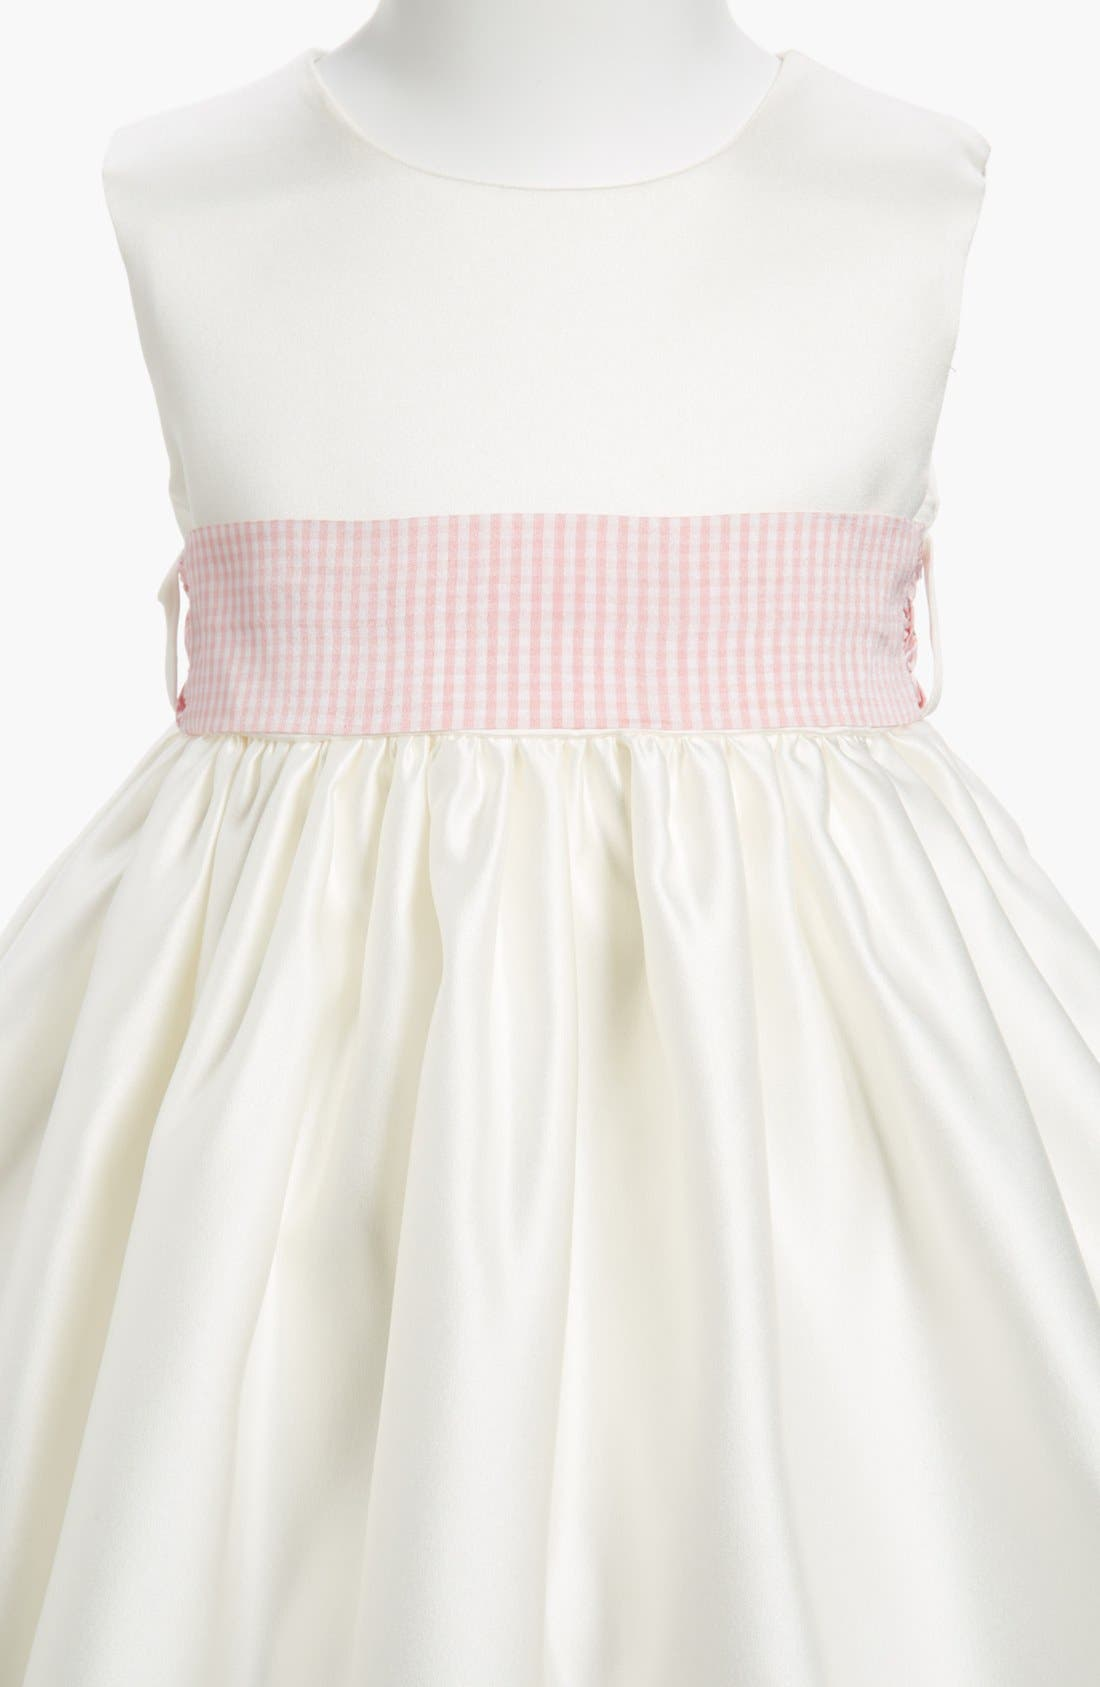 Gingham Sash,                             Alternate thumbnail 2, color,                             PINK GINGHAM